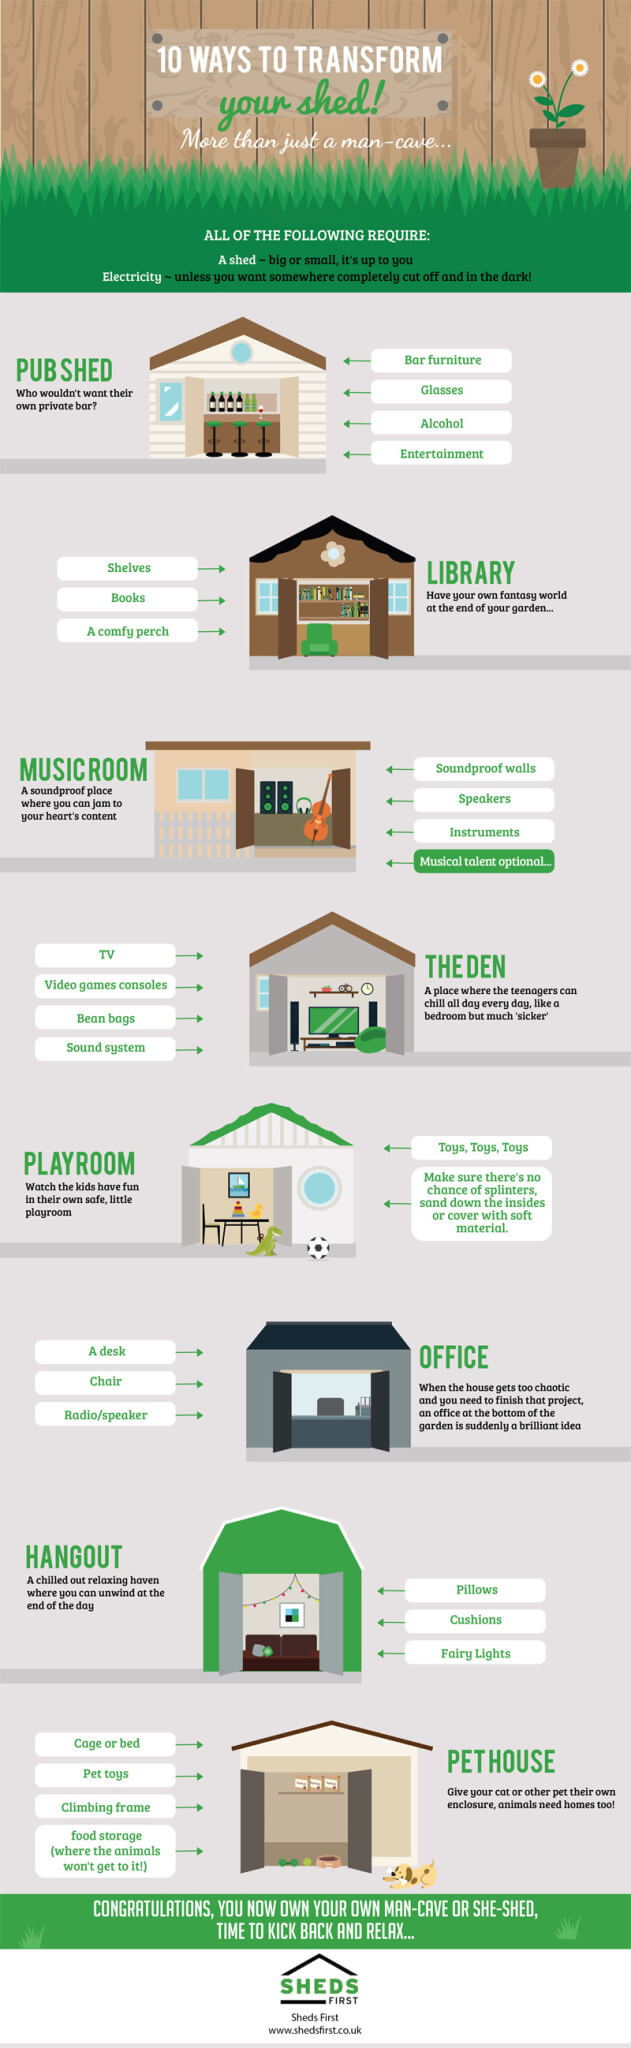 shed shed infographic storage